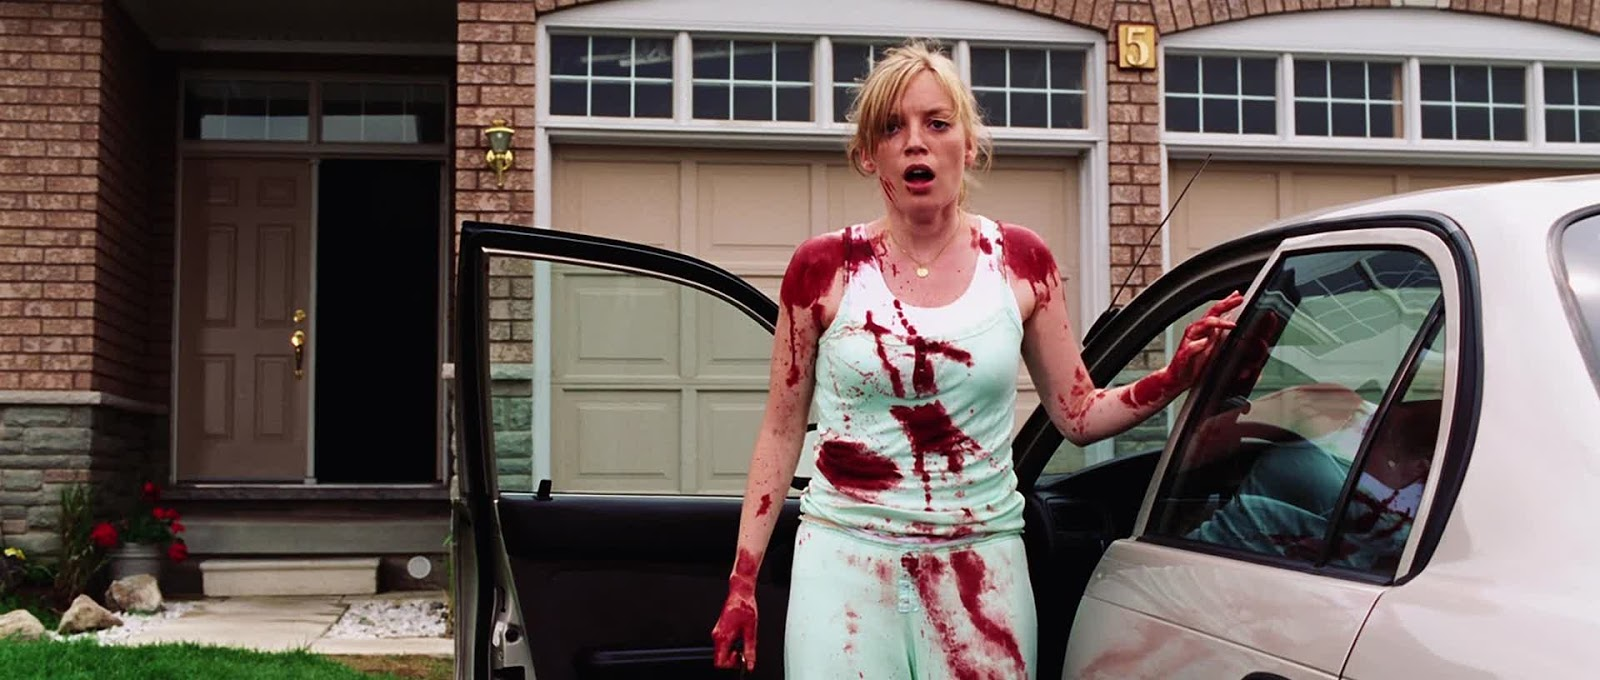 dawn of the dead 1 - Top 10 Horror Remakes of the 21st Century